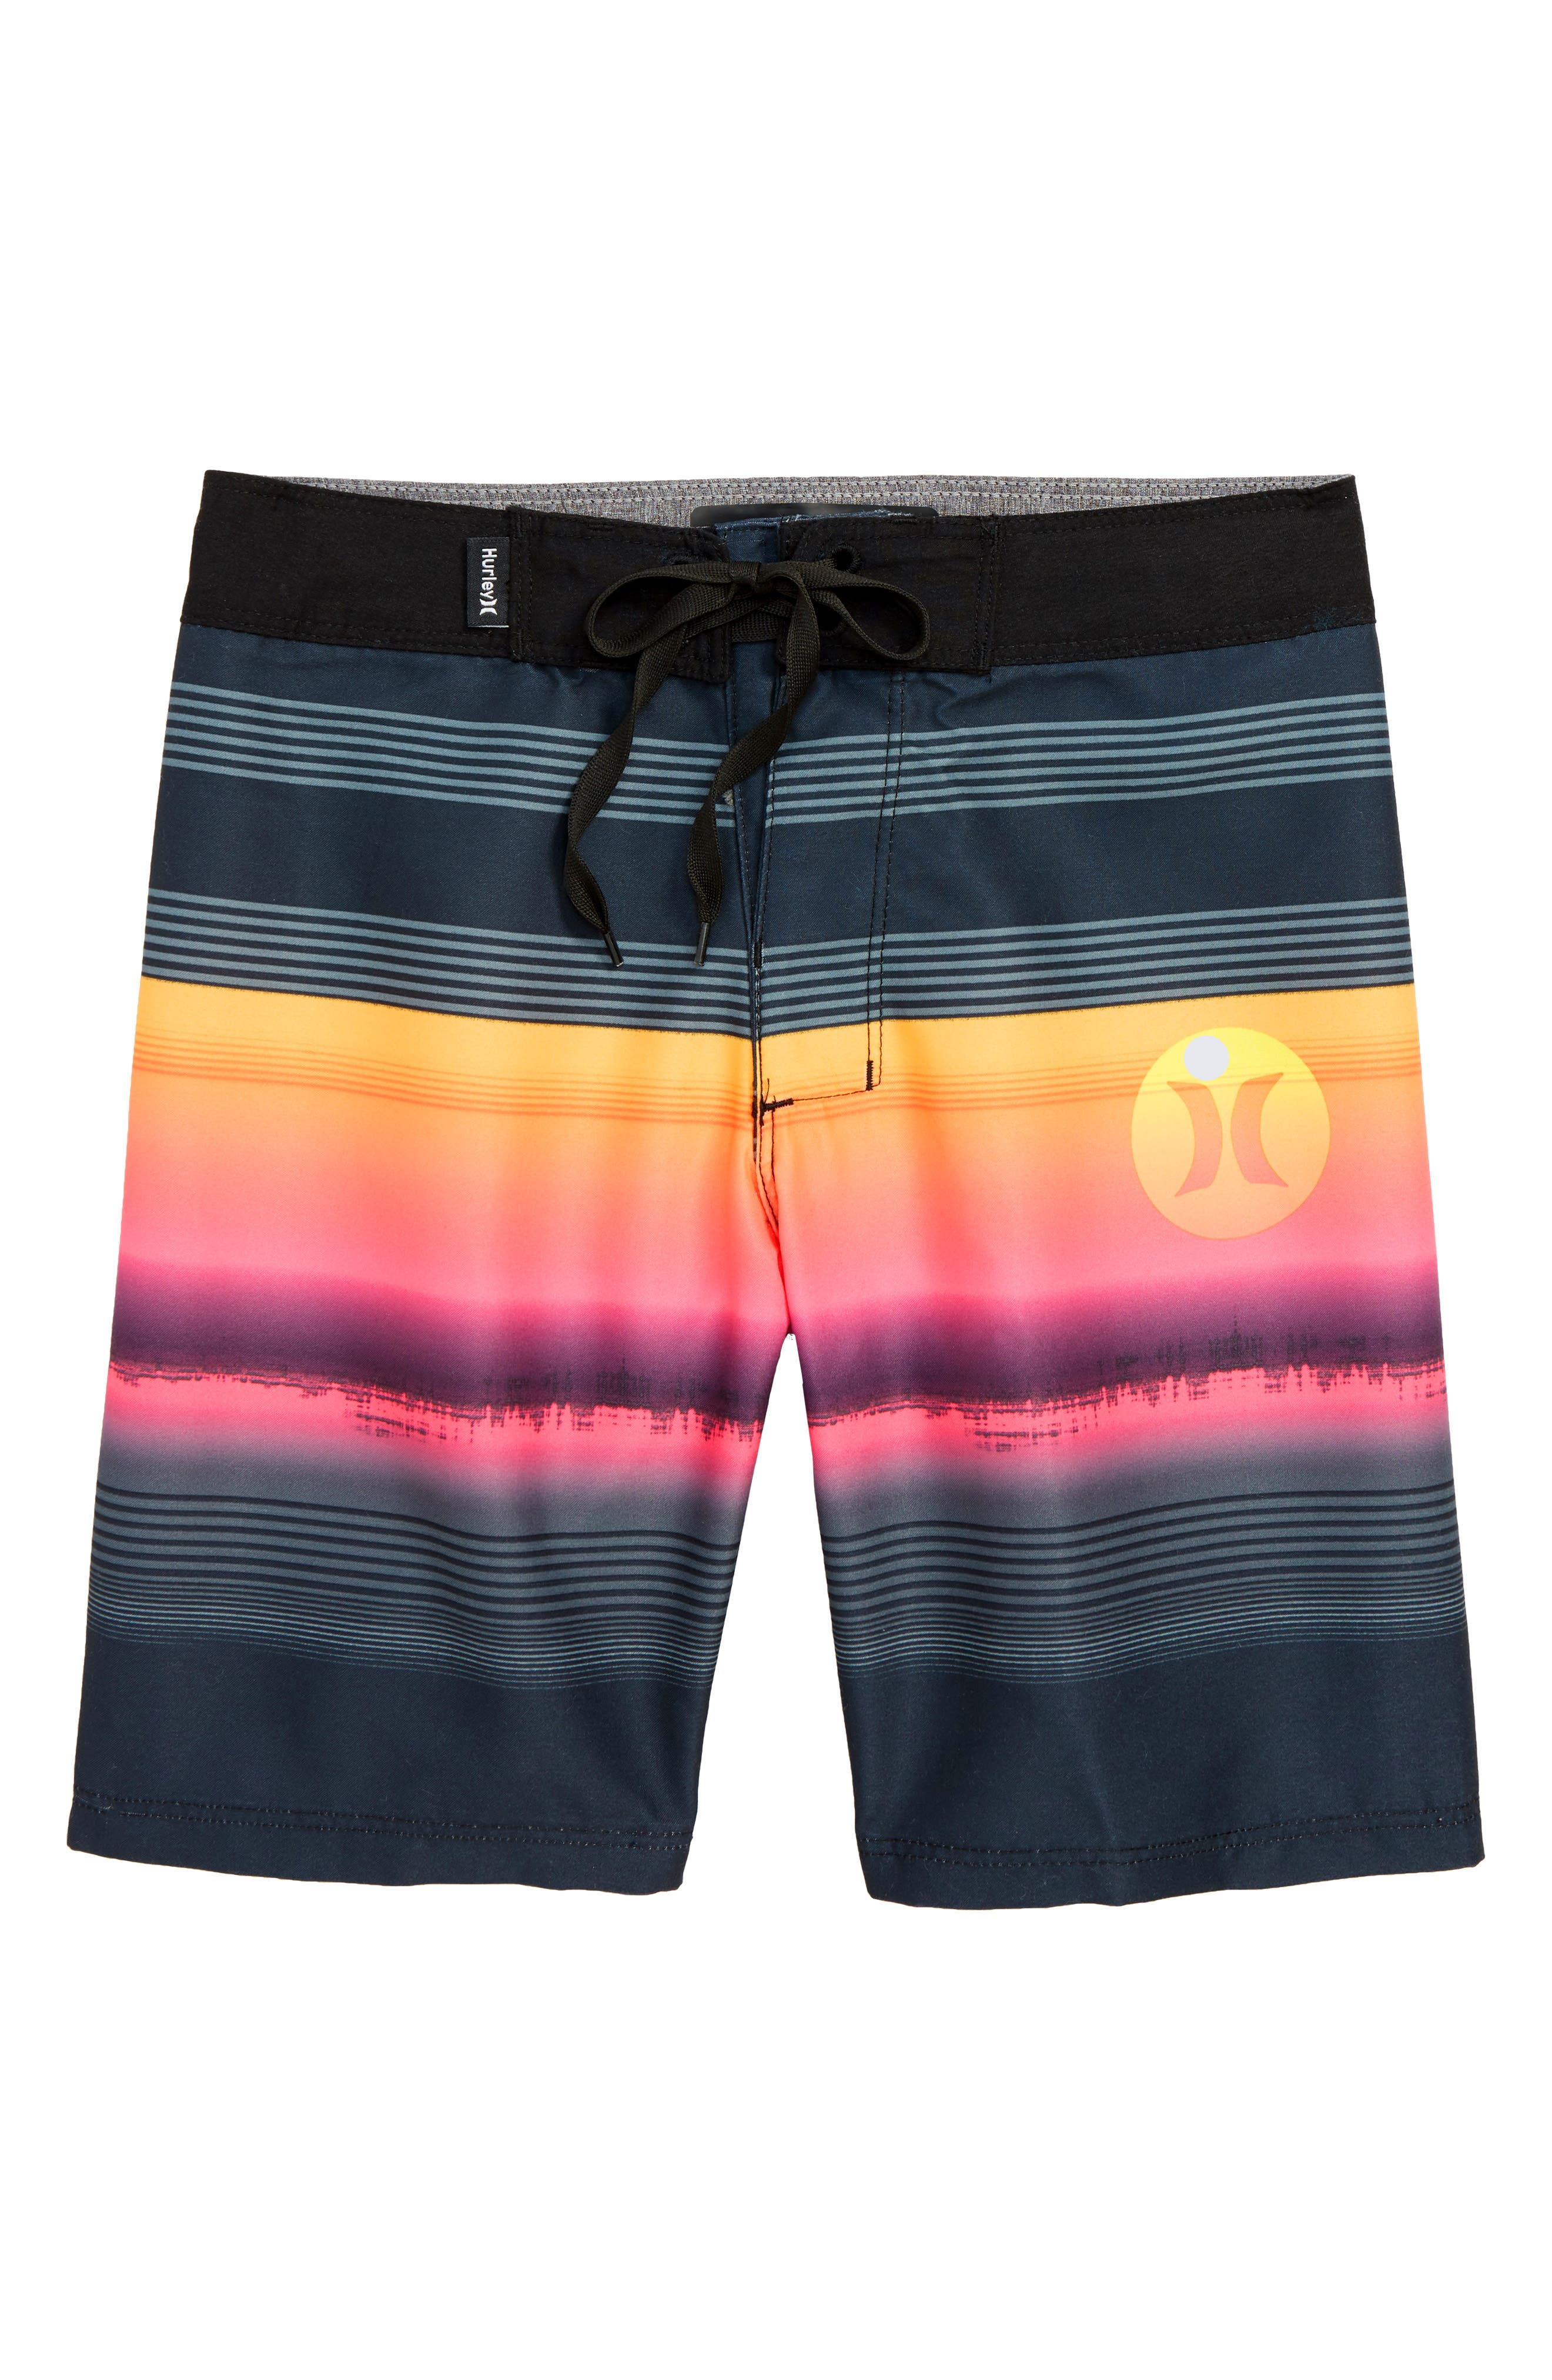 HURLEY Gavitos Board Shorts, Main, color, 001